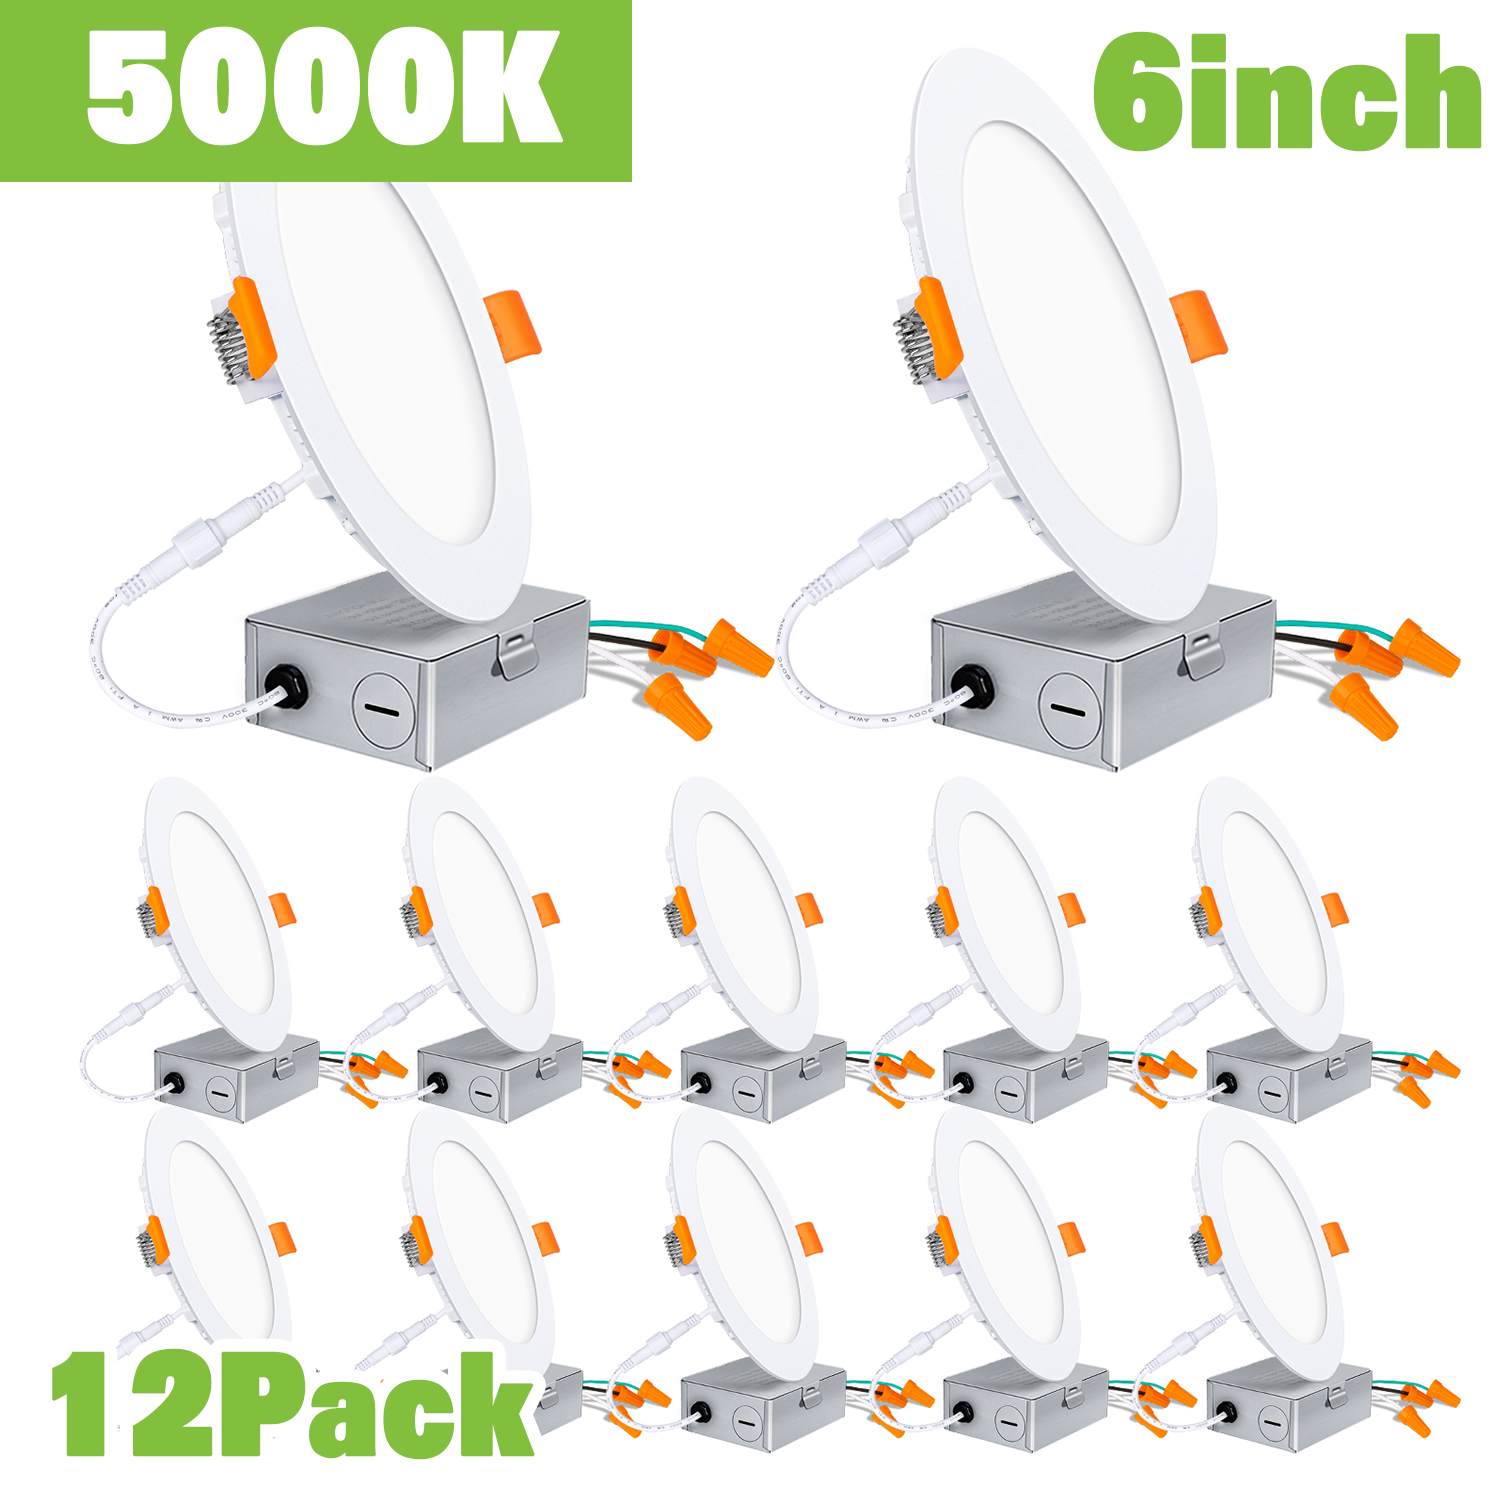 Hykolity 12 Pack 6 Inch Led Slim Recessed Lighting With Junction